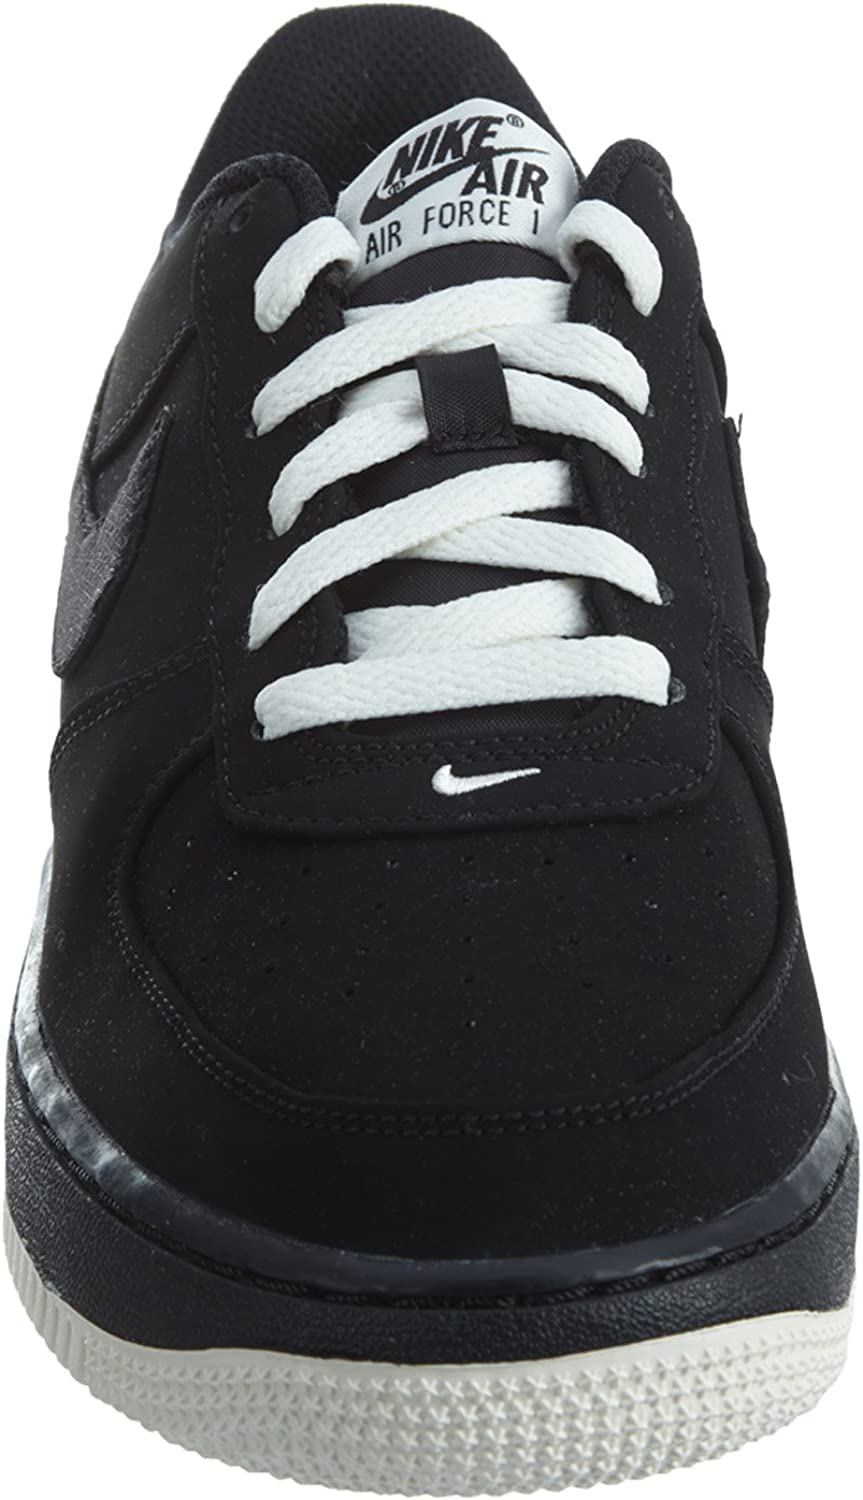 Nike 596728 027 Air Force 1 (GS) Wolf Grey 36.5: